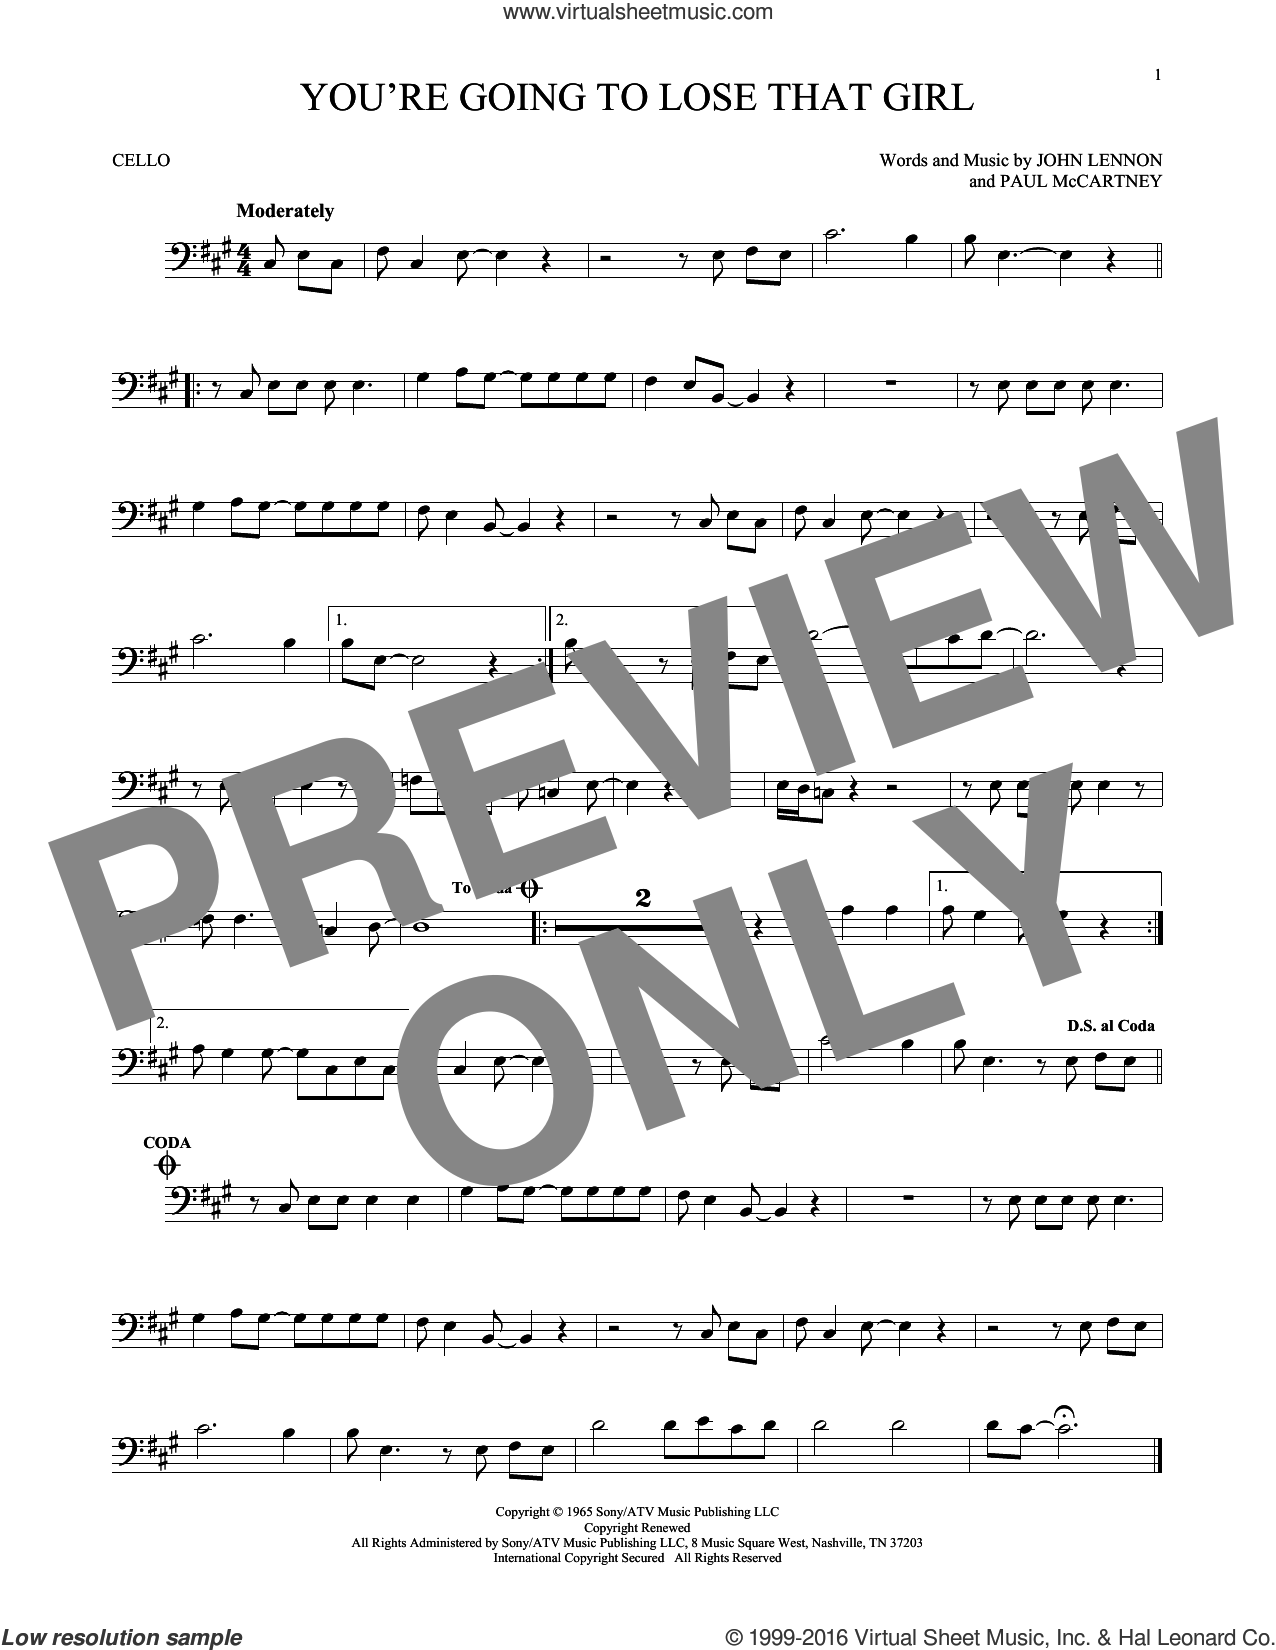 You're Going To Lose That Girl sheet music for cello solo by Paul McCartney, The Beatles and John Lennon. Score Image Preview.